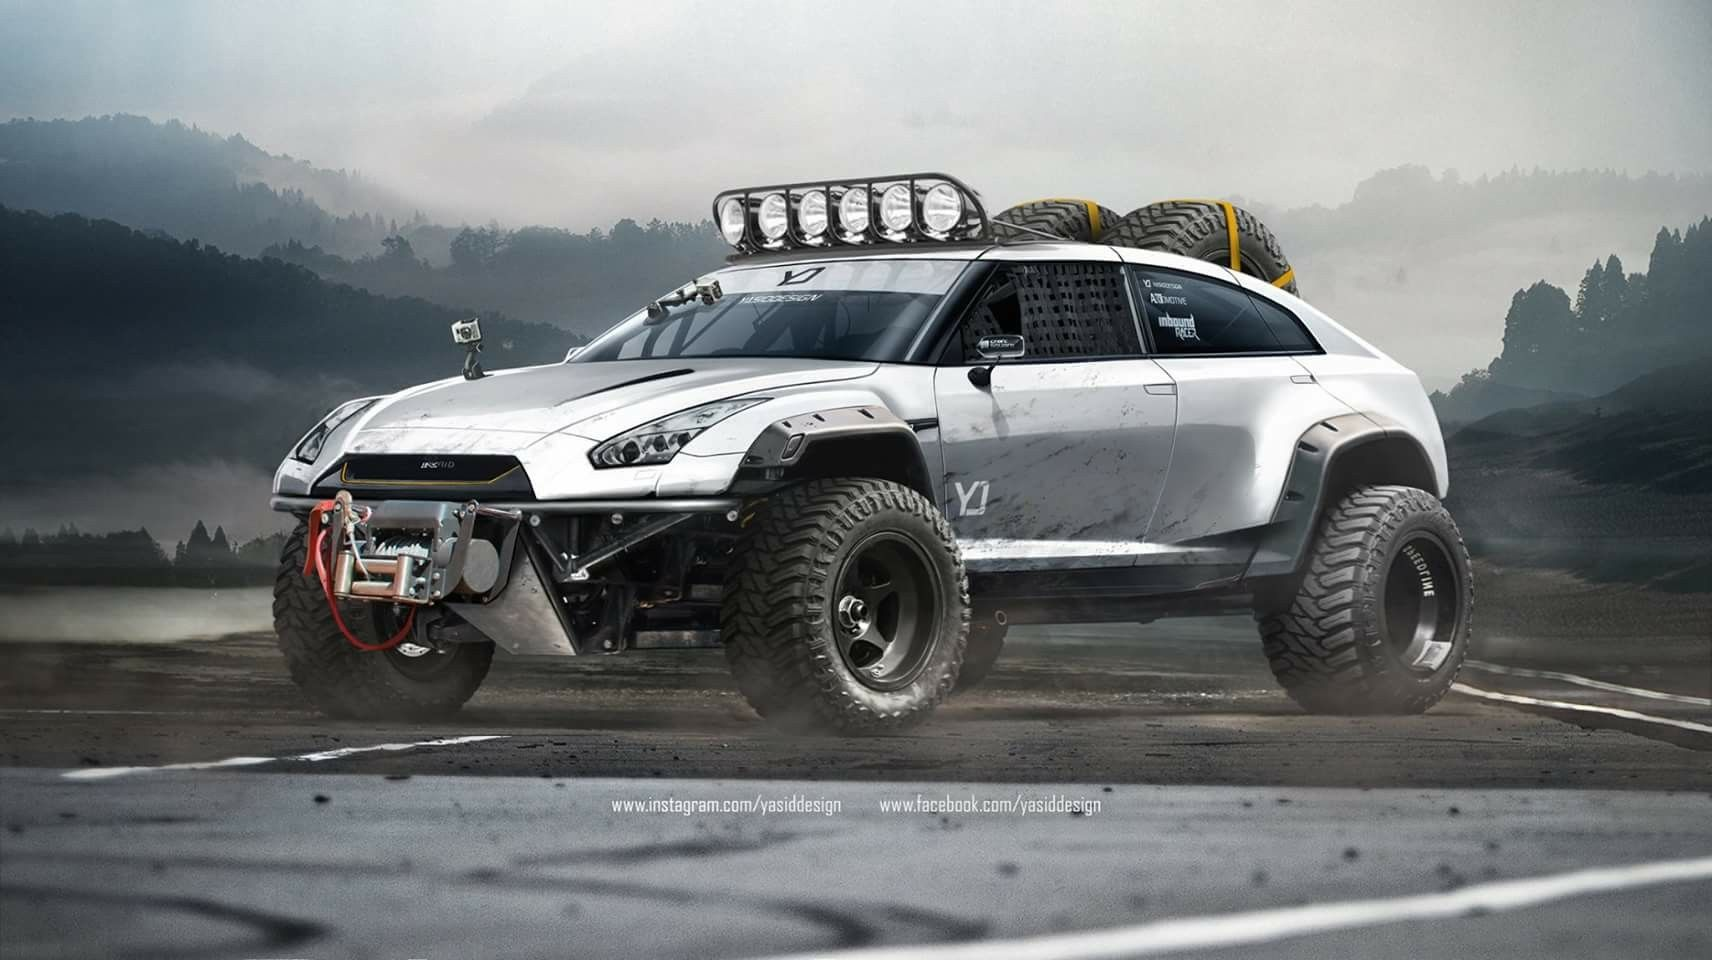 Pin By Emiliano Rubi On Virtual Tuning Futuristic Cars Super Cars Offroad Vehicles